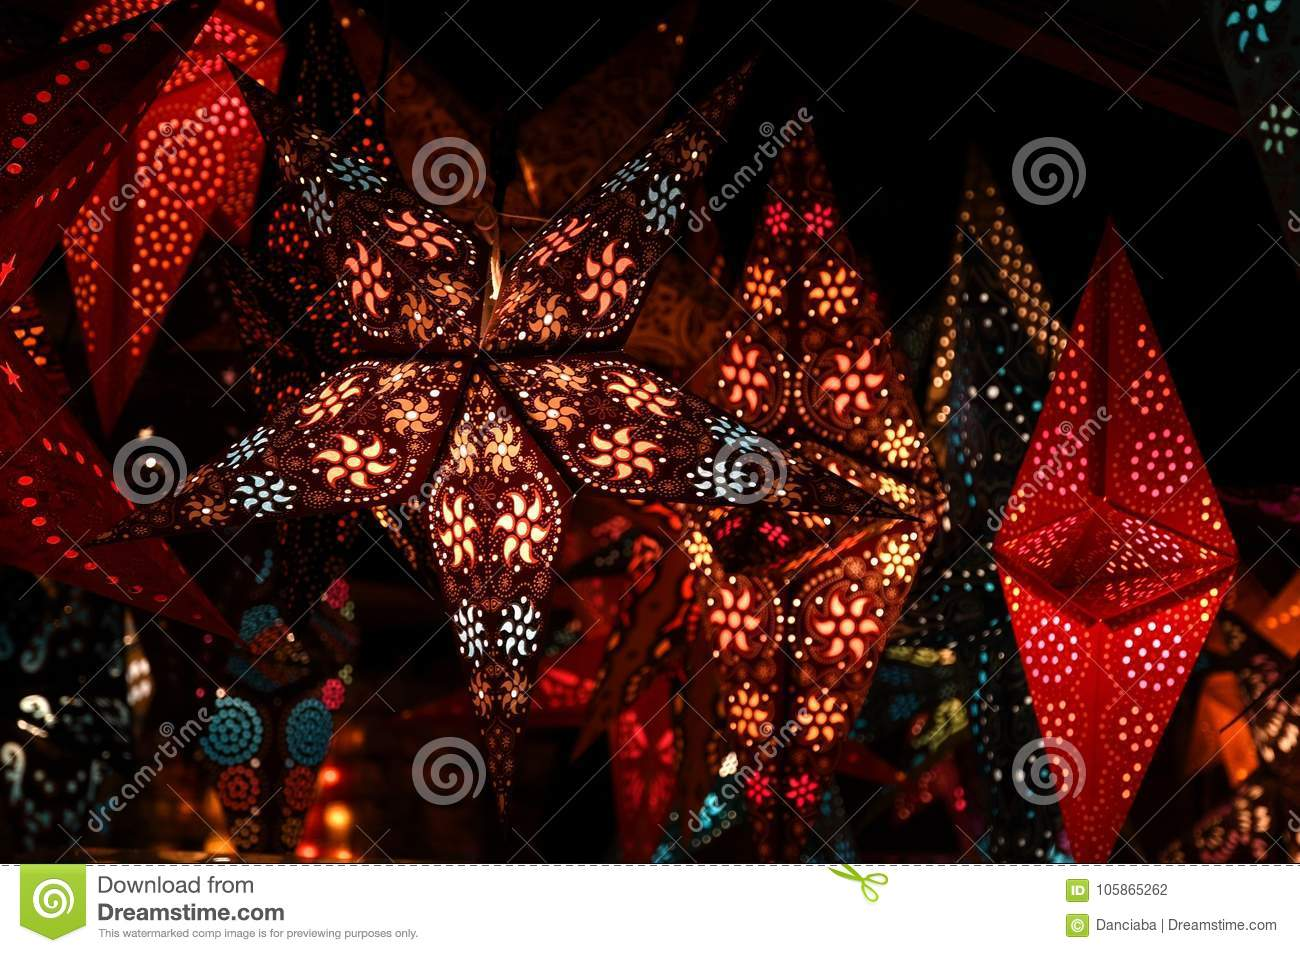 florence 2 december 2017 christmas decorations in a christmas market italy